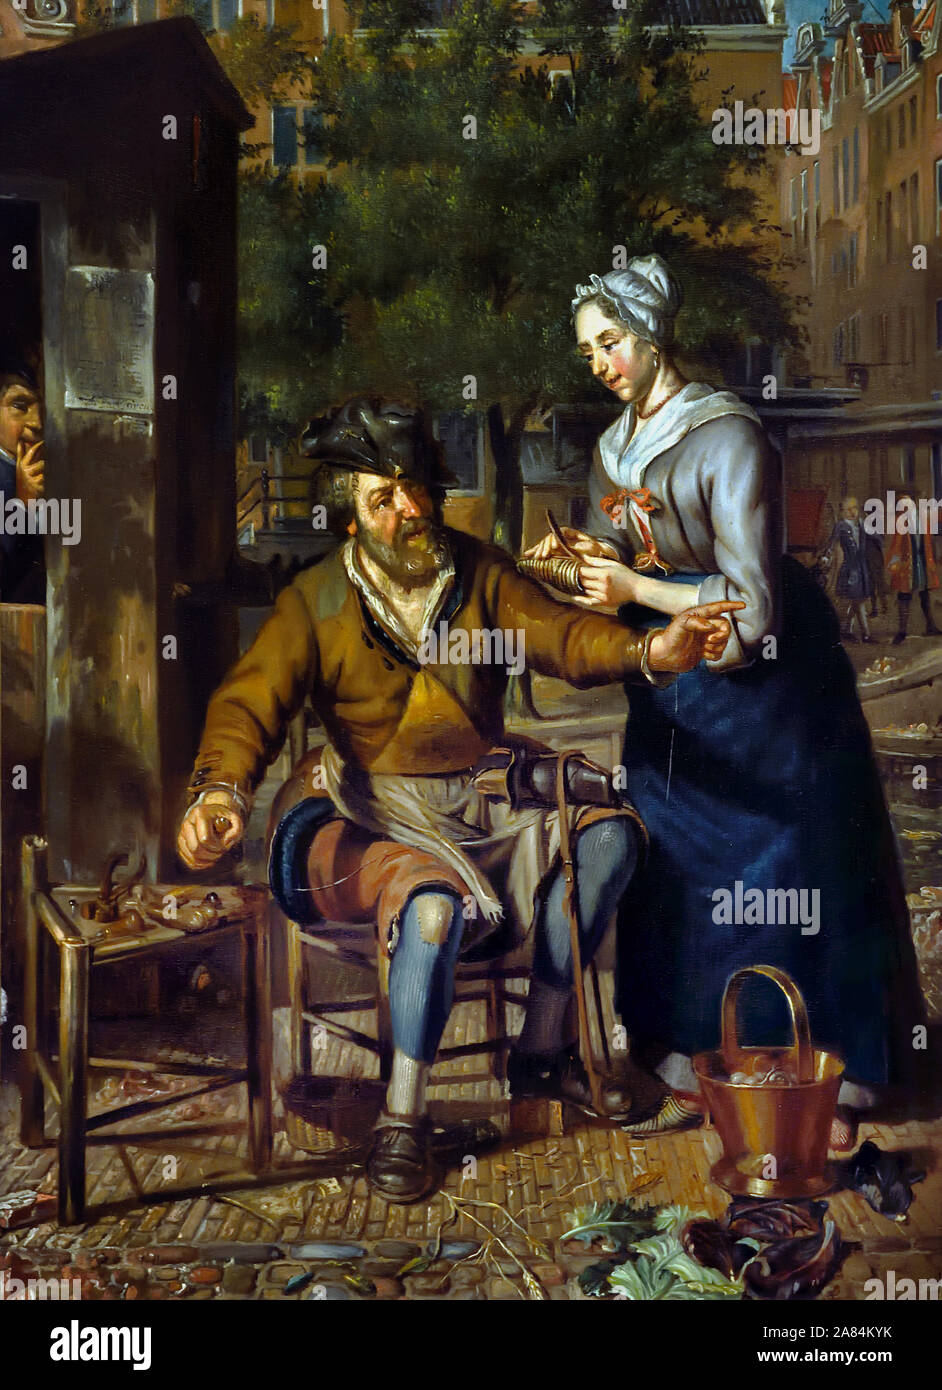 Cobbler working on the street, by Matthijs Naiveu 1647-1726 The Netherlands, Dutch, ( mending shoes and taking care ) Stock Photo